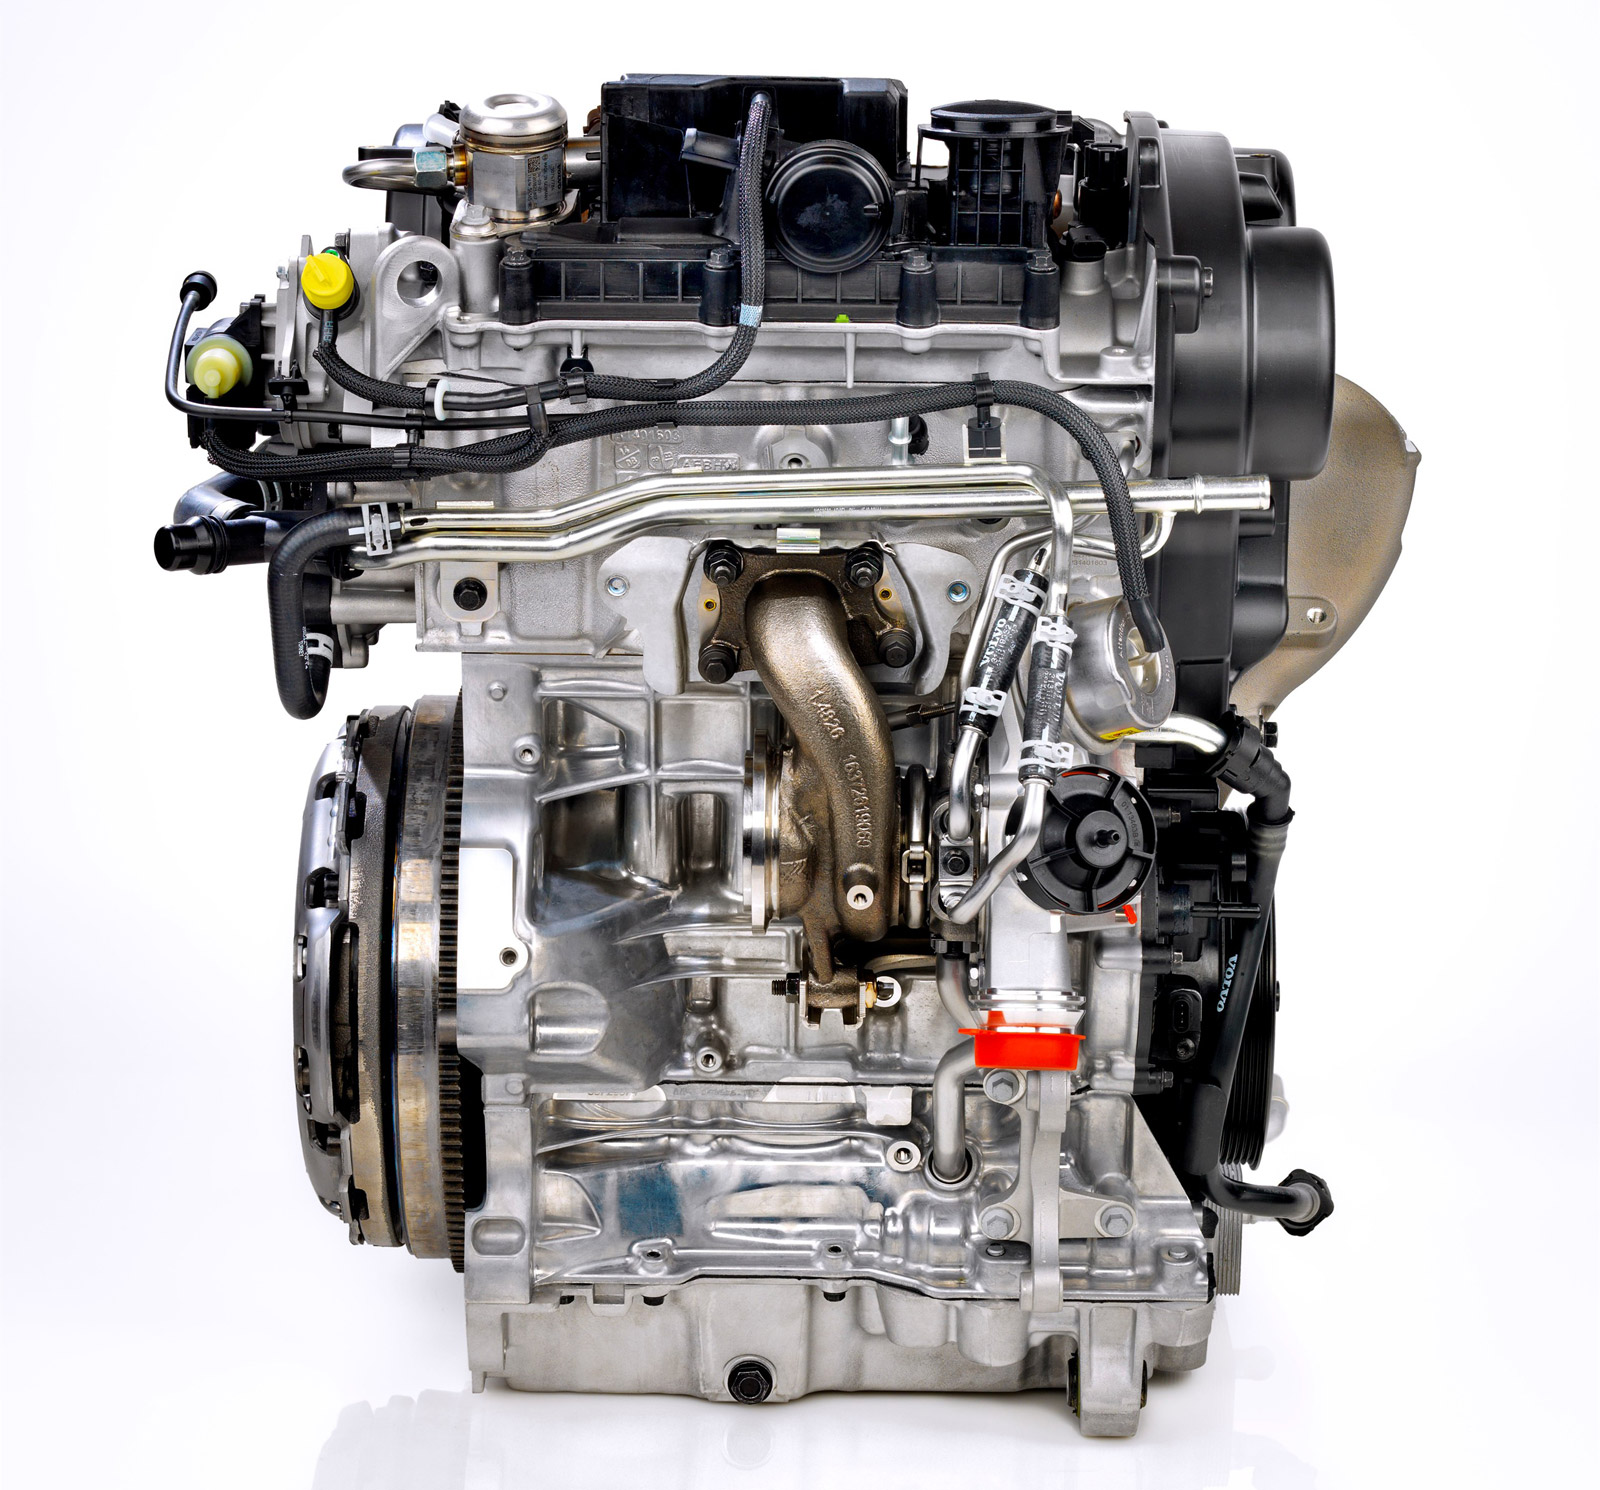 Volvo Reveals New Generation Five Cylinder D5 Diesel Engine: Volvo Reveals Three-Cylinder Engines, Promises Up To 180 HP